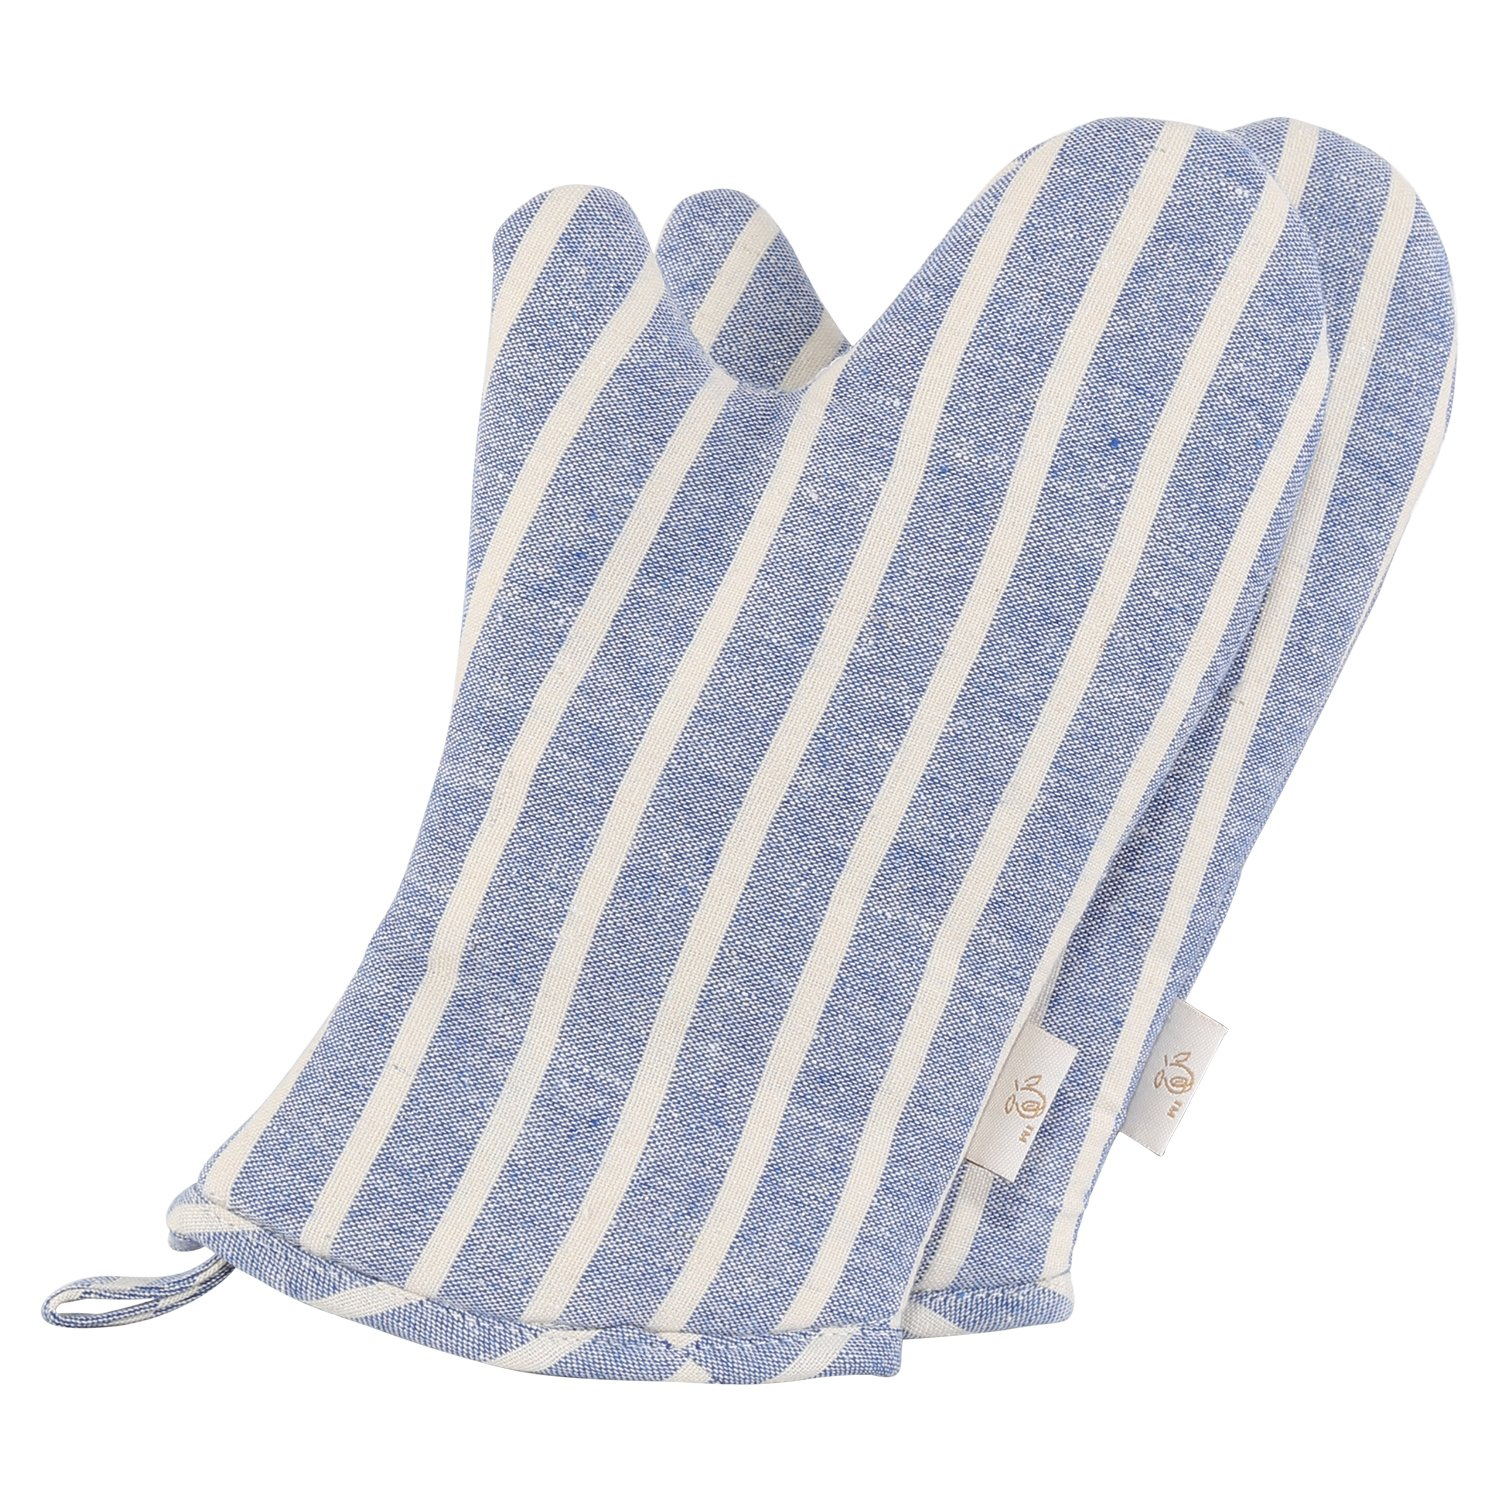 Neoviva Denim Quilted Heat Resistant Kid's Oven Mitt for Play Kitchen, Set of 2, Chalk Striped Cosmic Sky